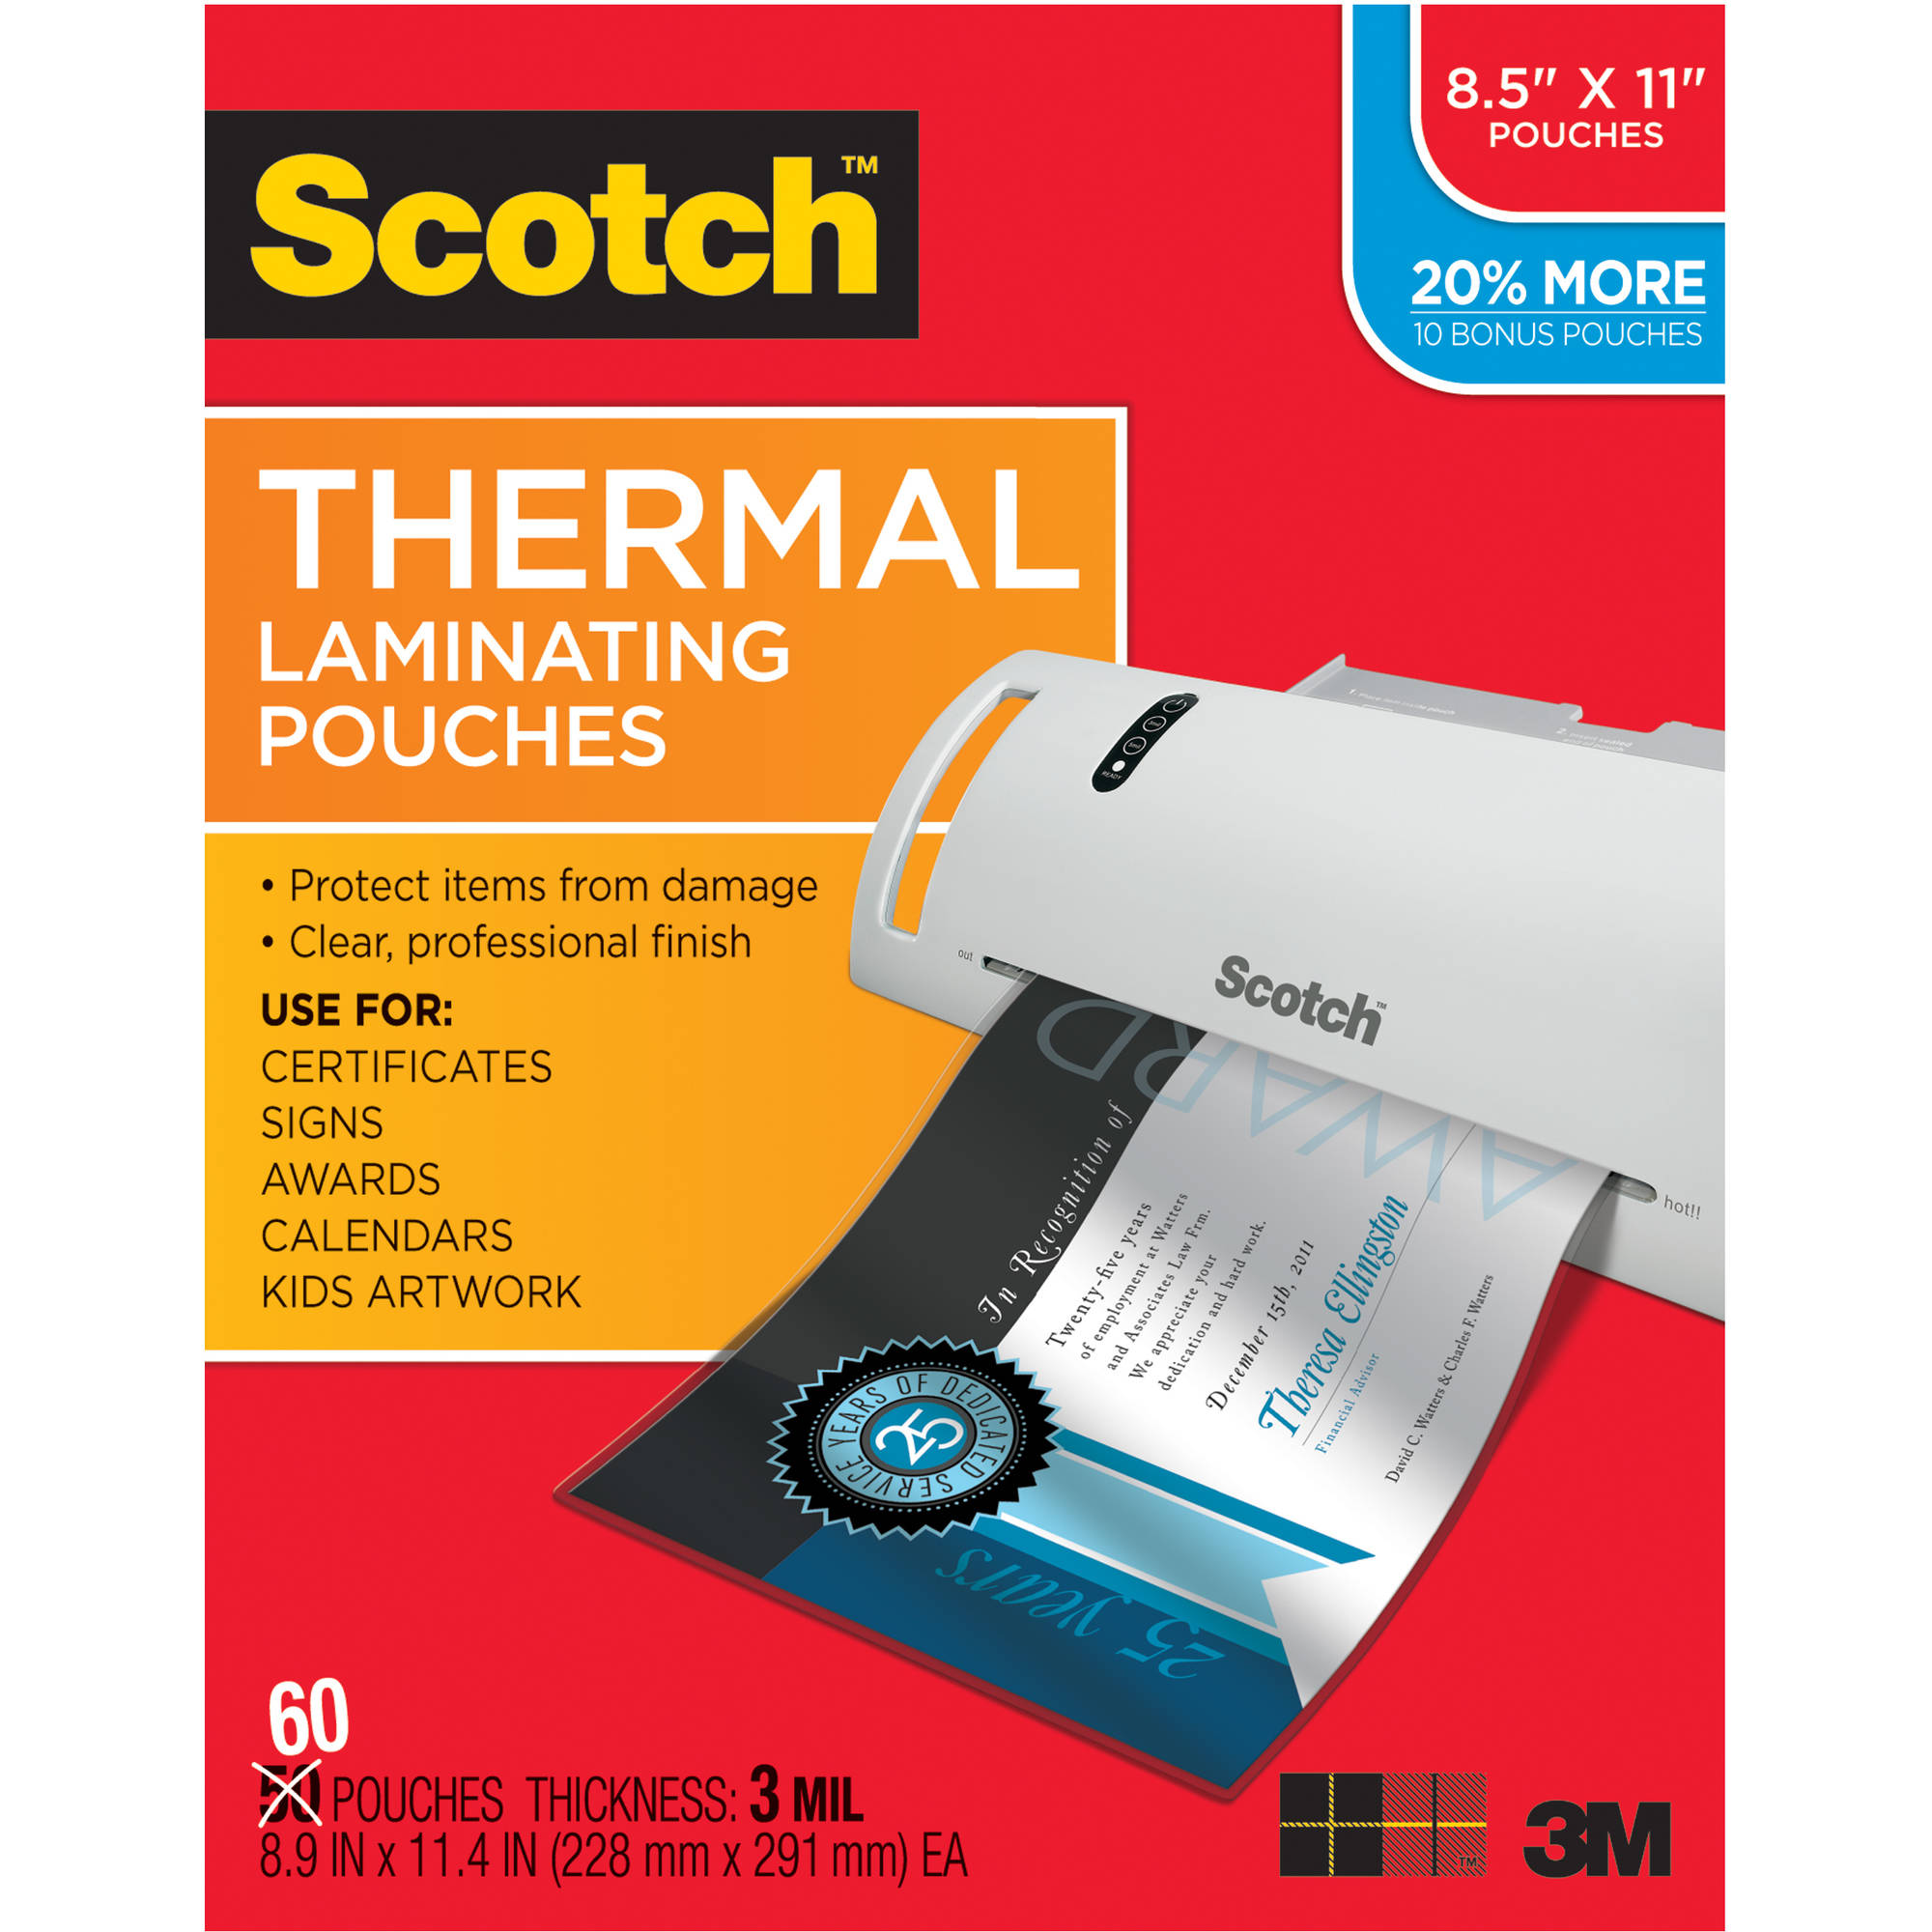 Scotch Thermal Laminating Pouch 60-Pack, 3mm